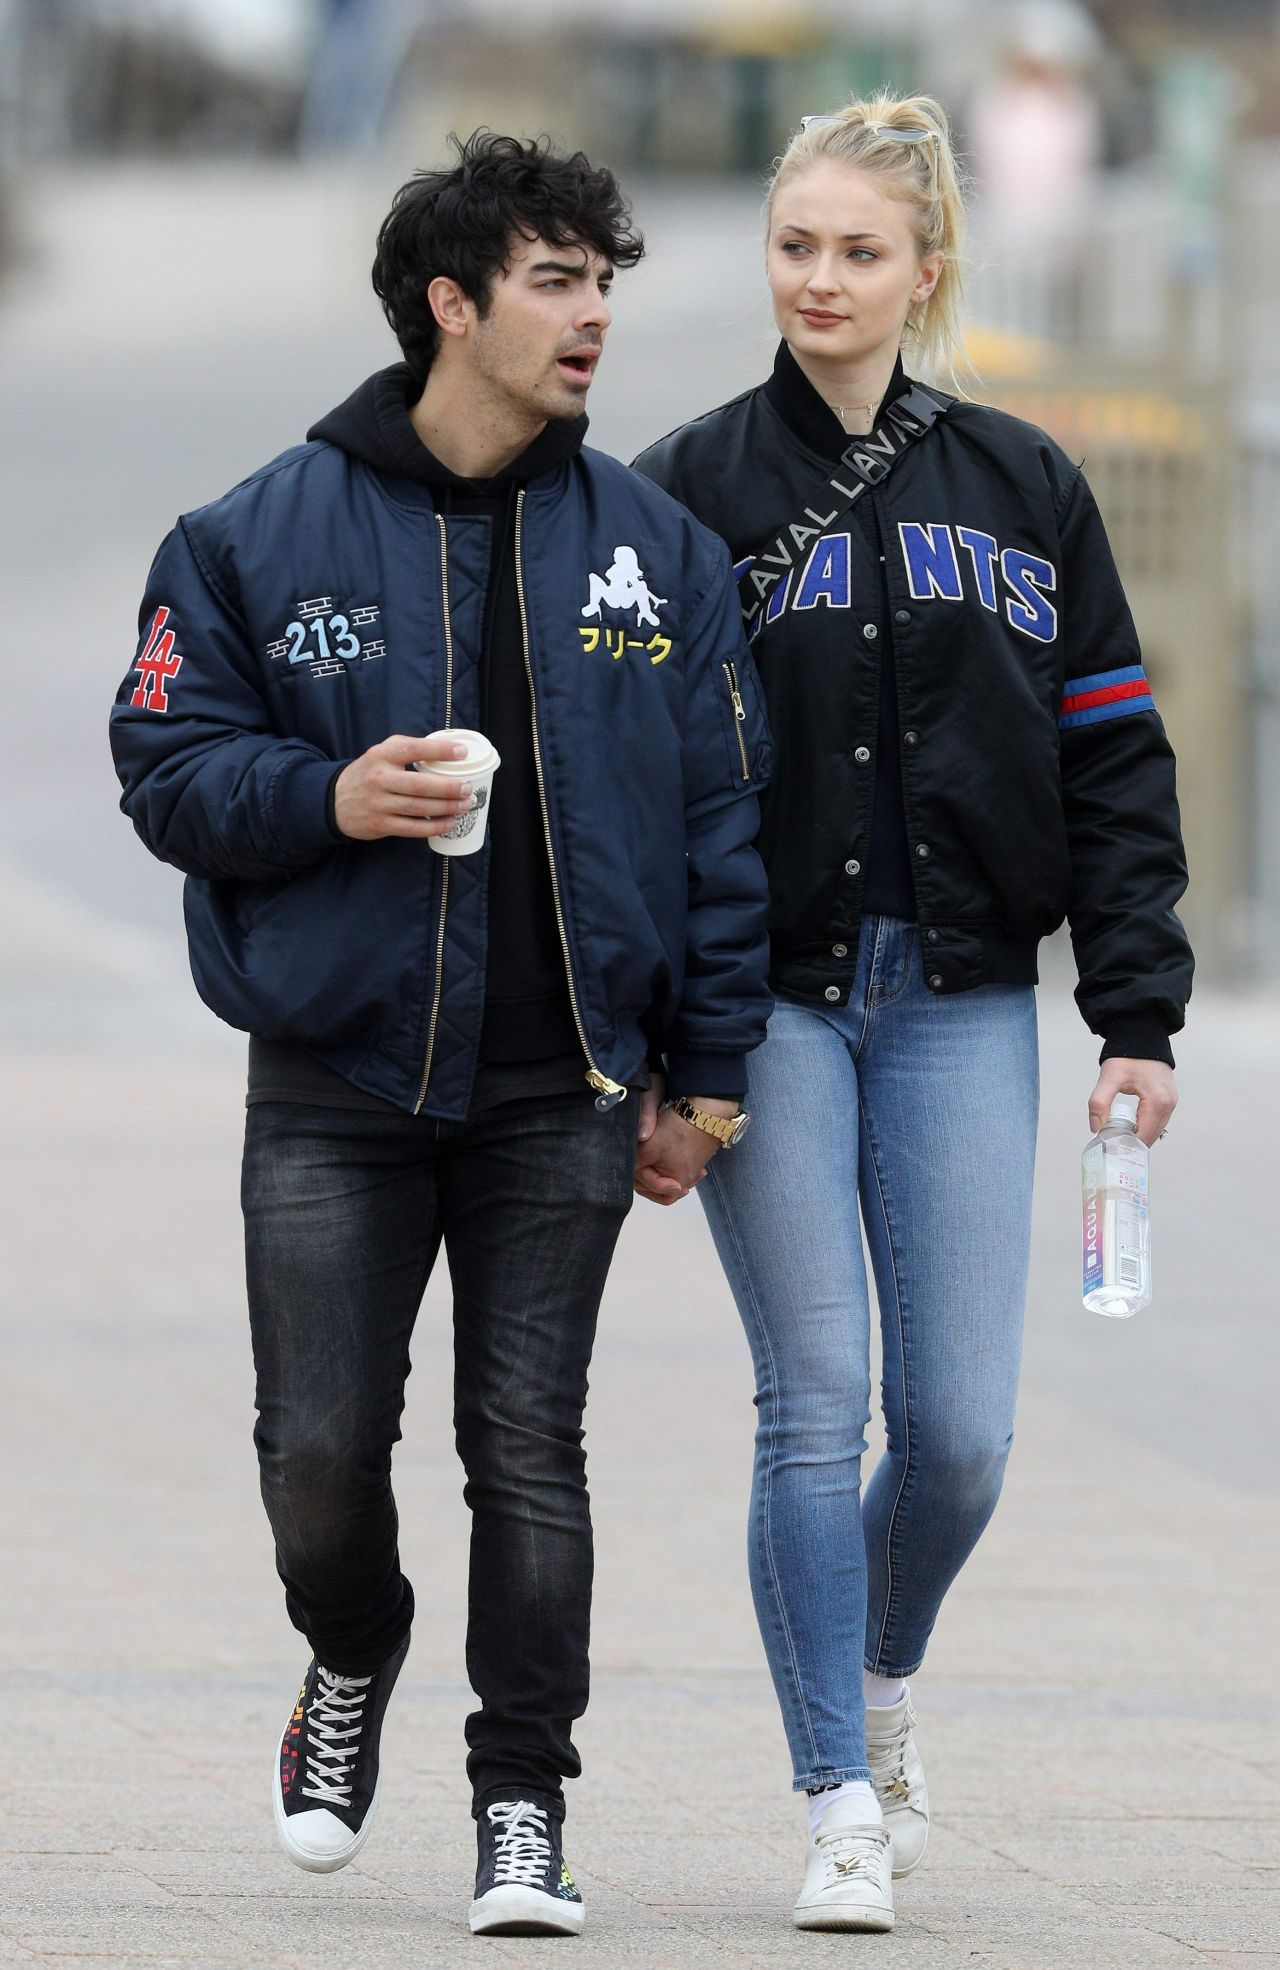 Joe jonas dating in Sydney